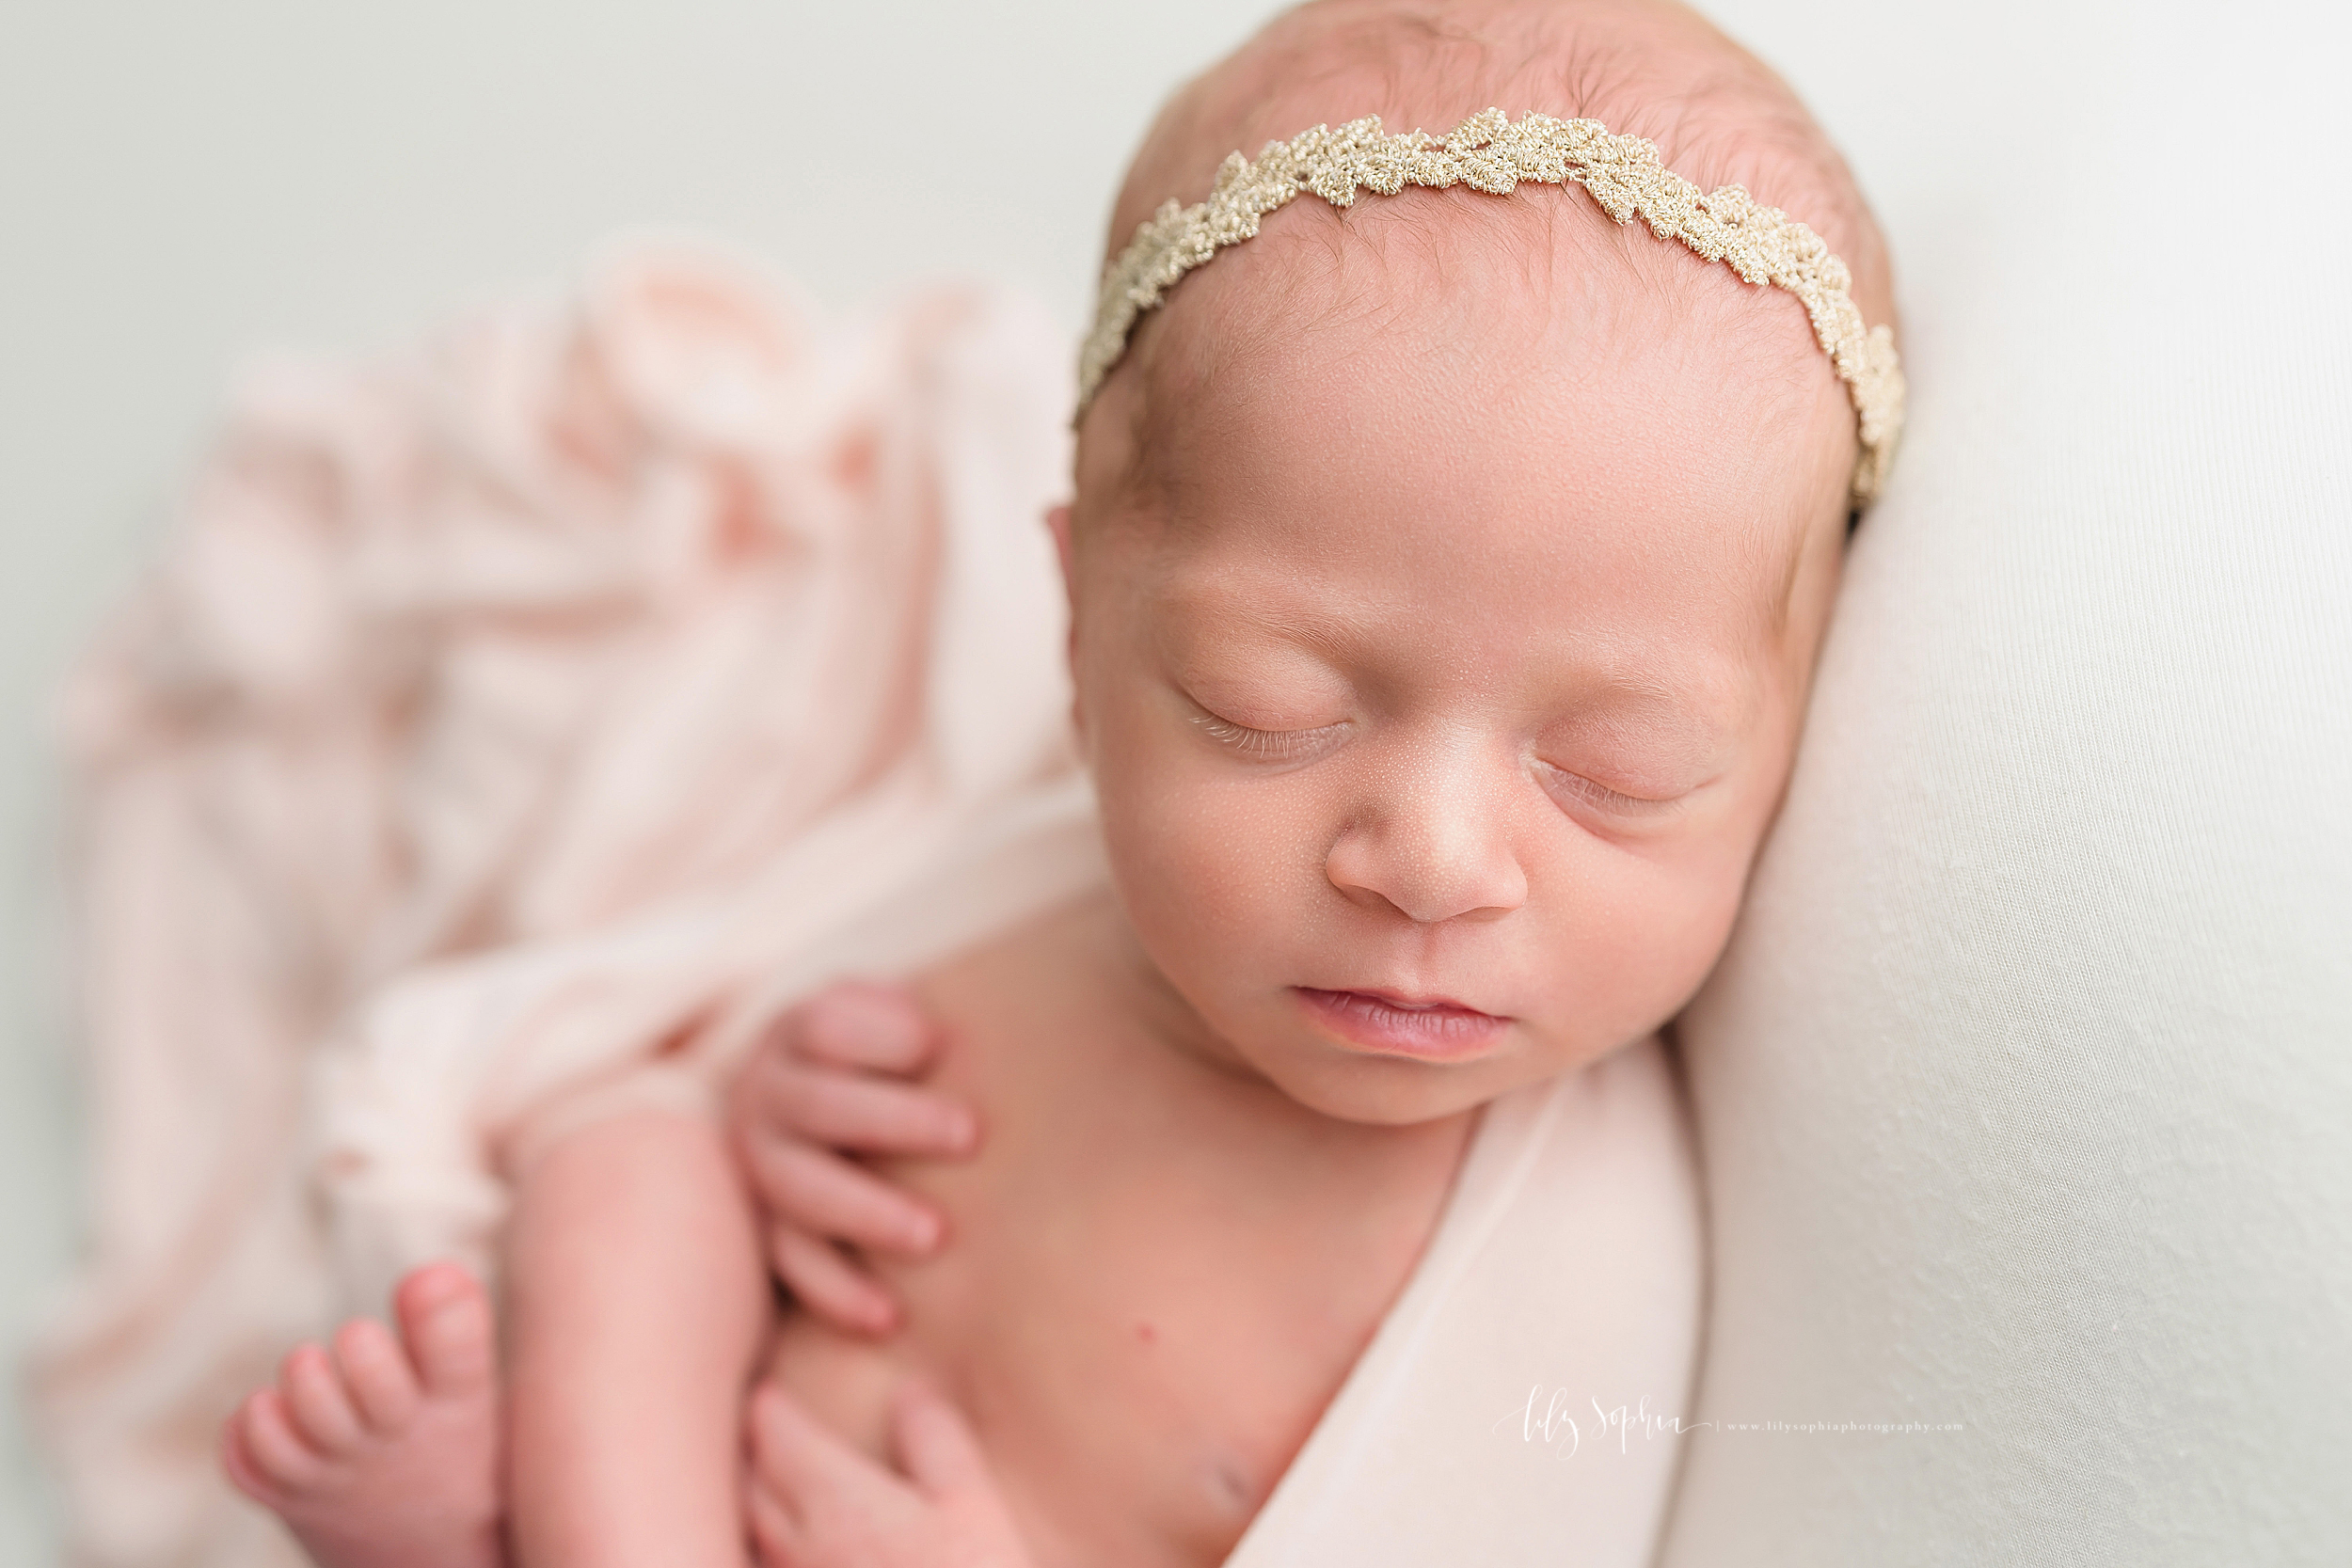 atlanta-decatur-candler-park-sandy-springs-buckhead-virginia-highlands-west-end-decatur-lily-sophia-photography-identical-twin-baby-newborn-girls-toddler-big-brother-family-photos_2041.jpg